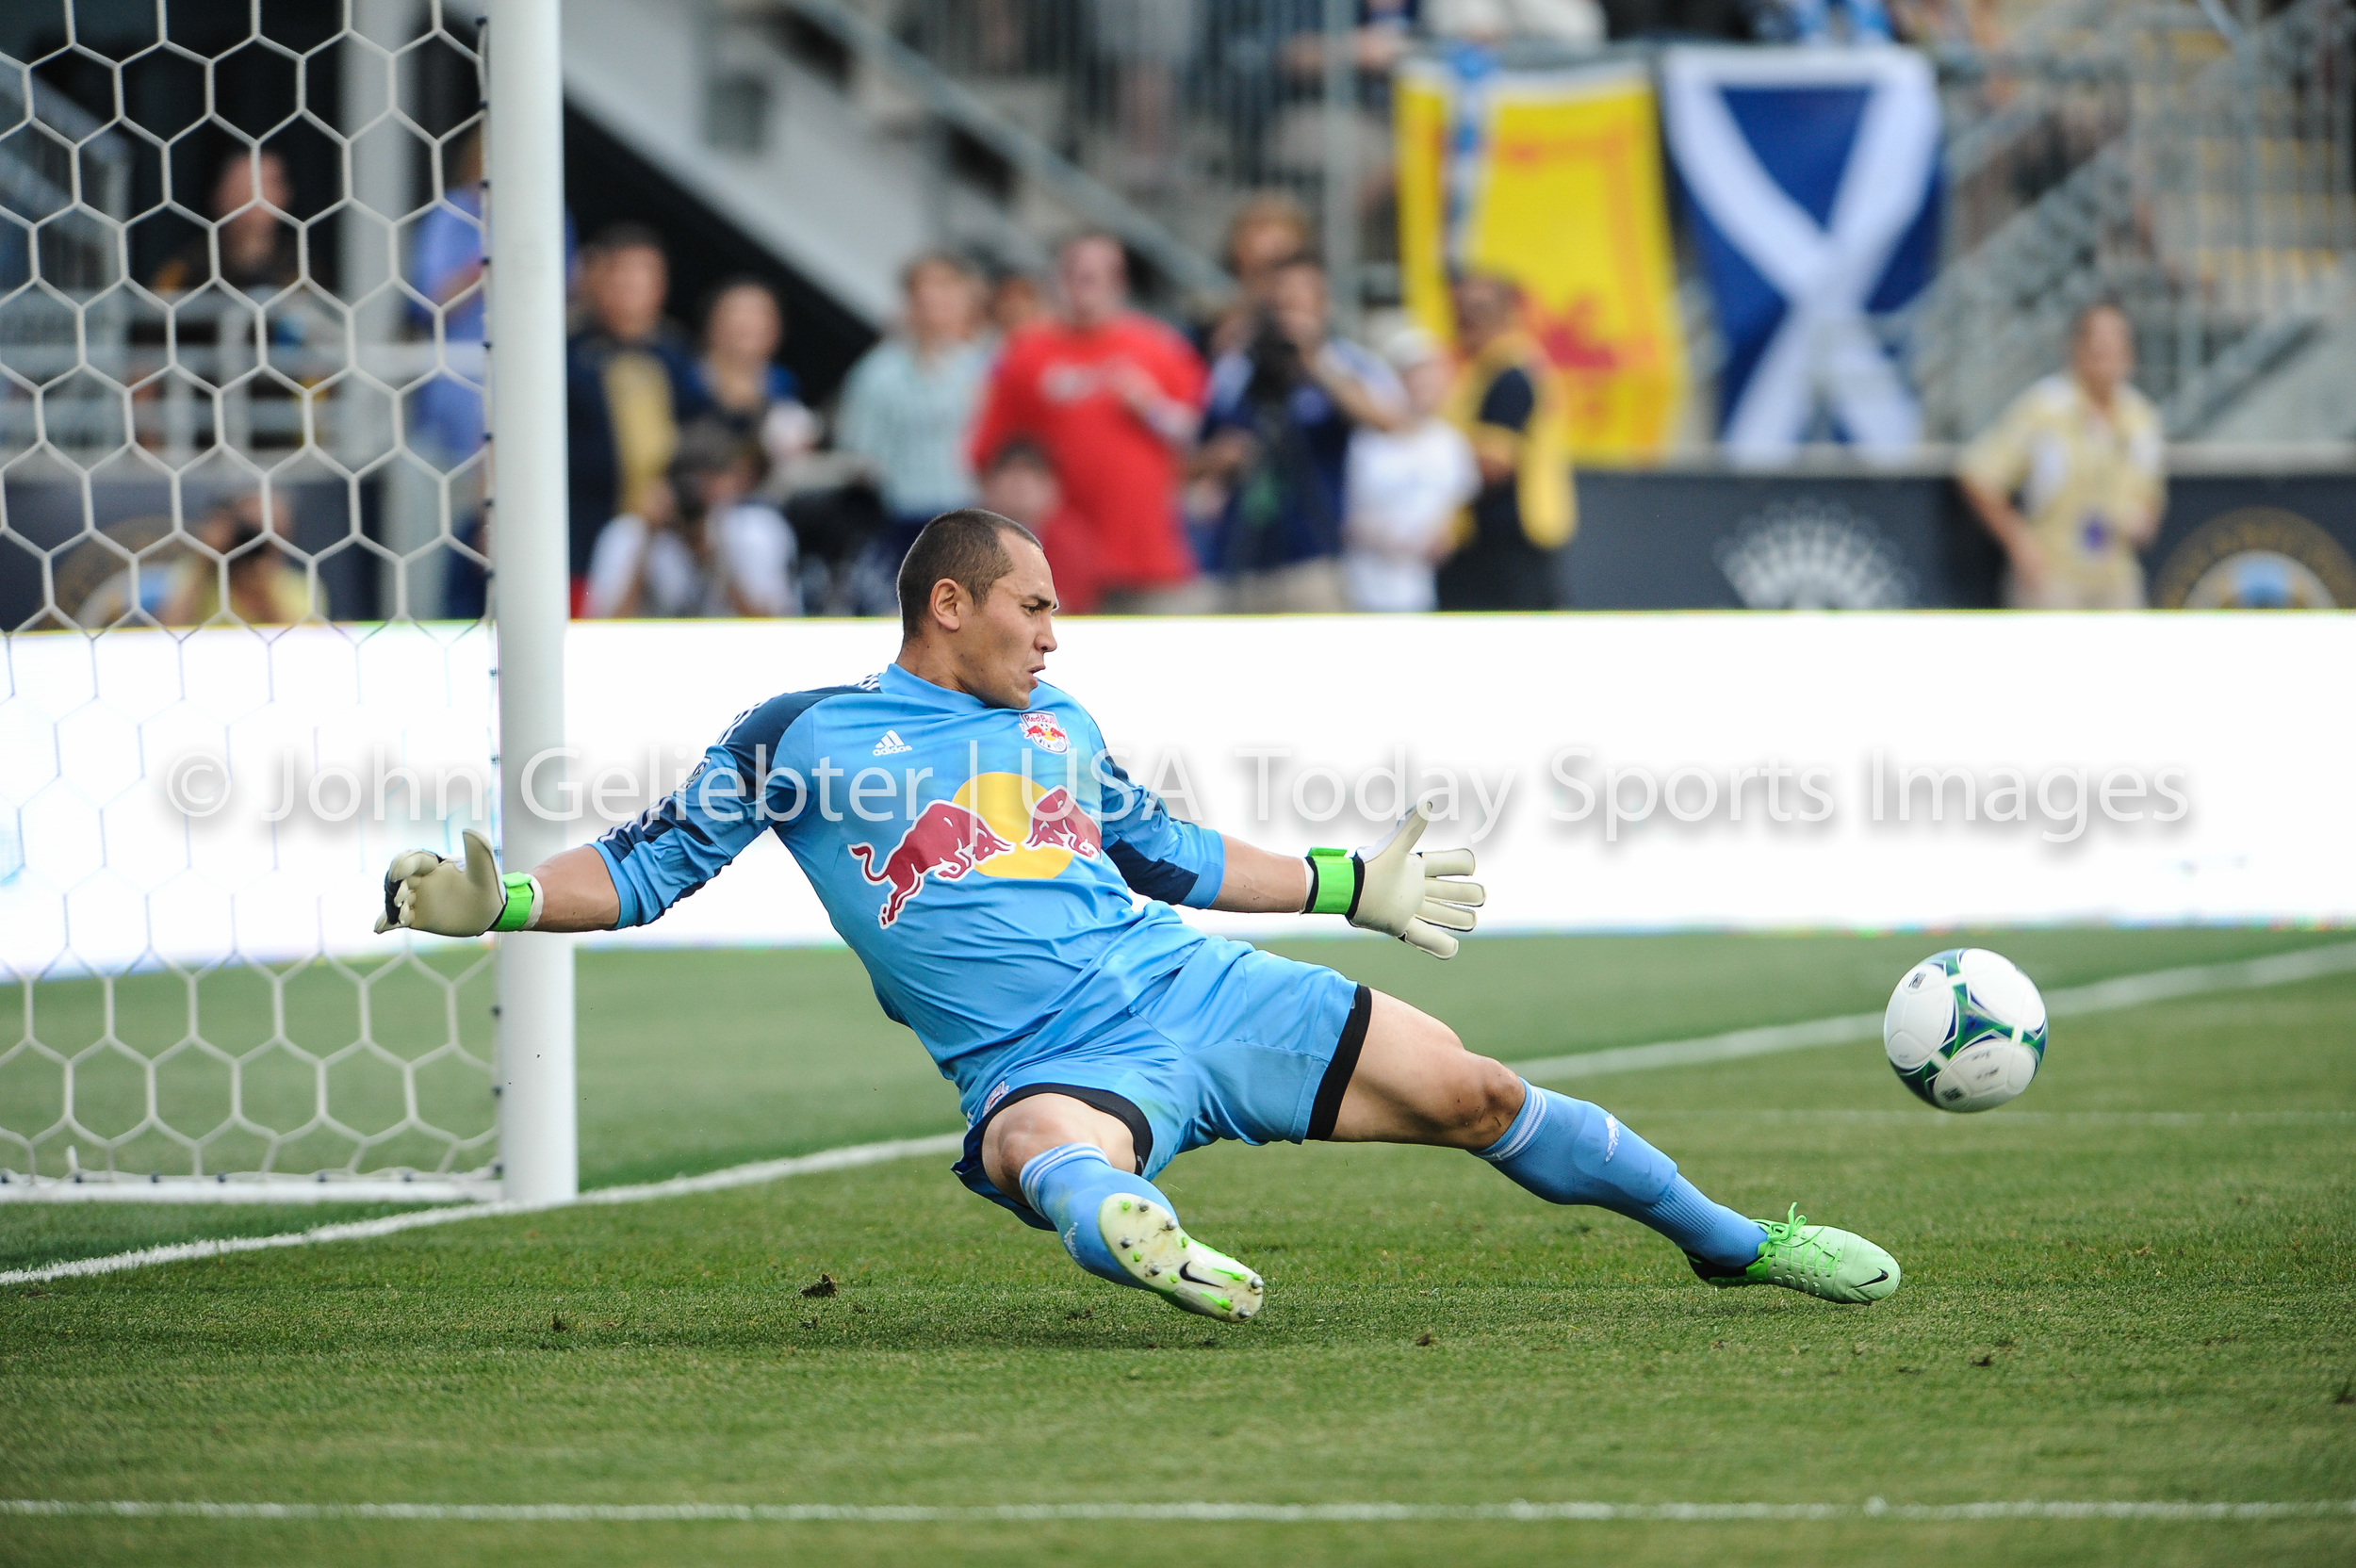 Redbulls_Union_June_23_2013_JAG0405.jpg